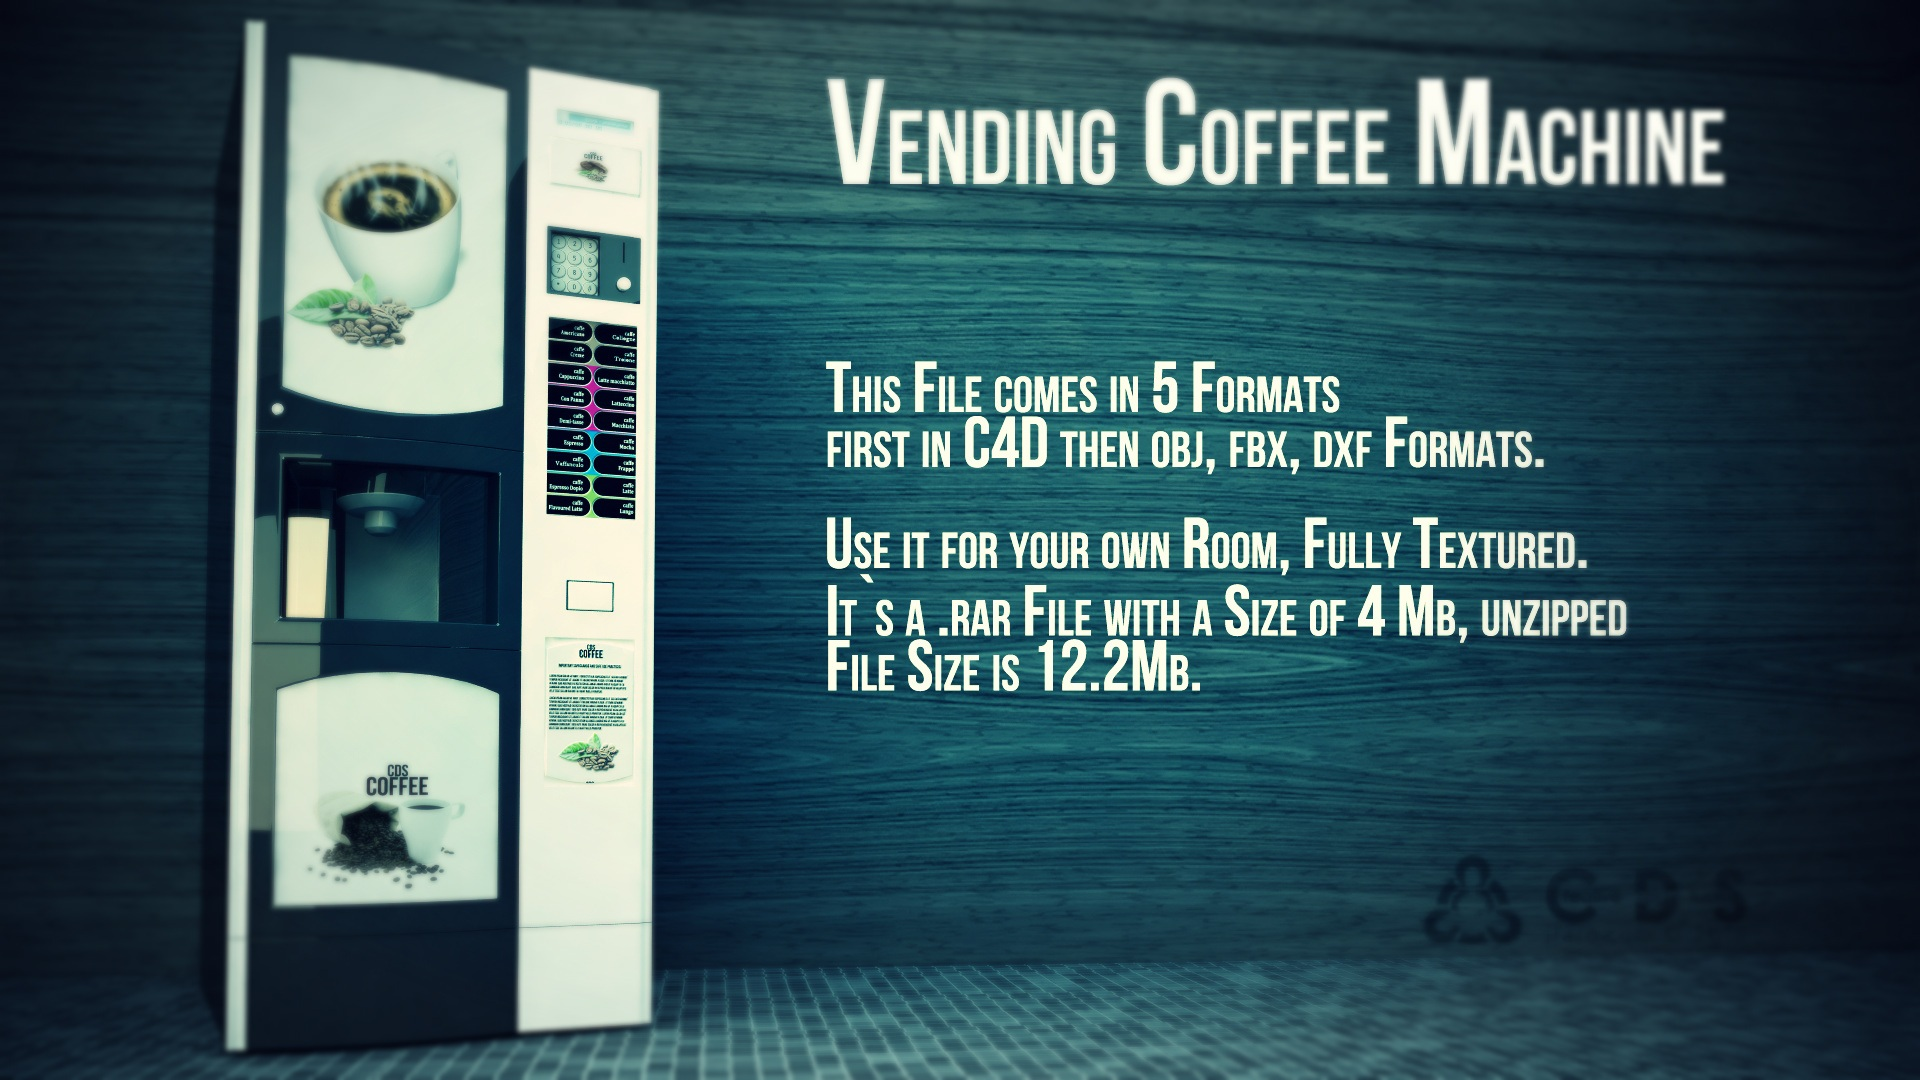 Vending Coffee Machine